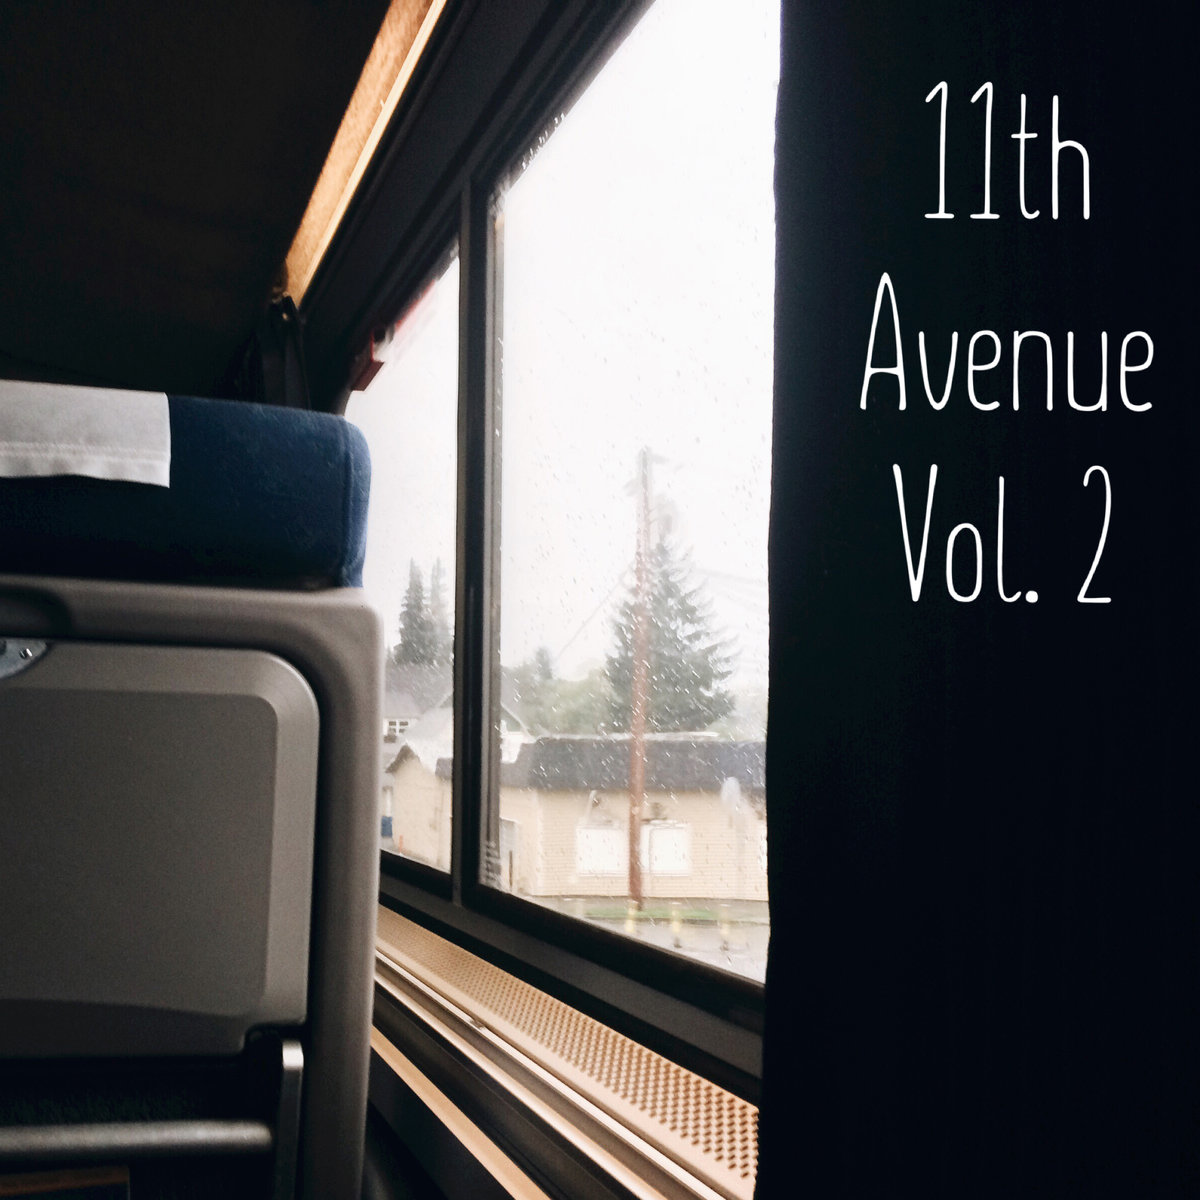 Wesley Woo - Older Bolder Wiser @ '11th Avenue Vol. 2' album (11th ave records, 11thaverecords 11th avenue)